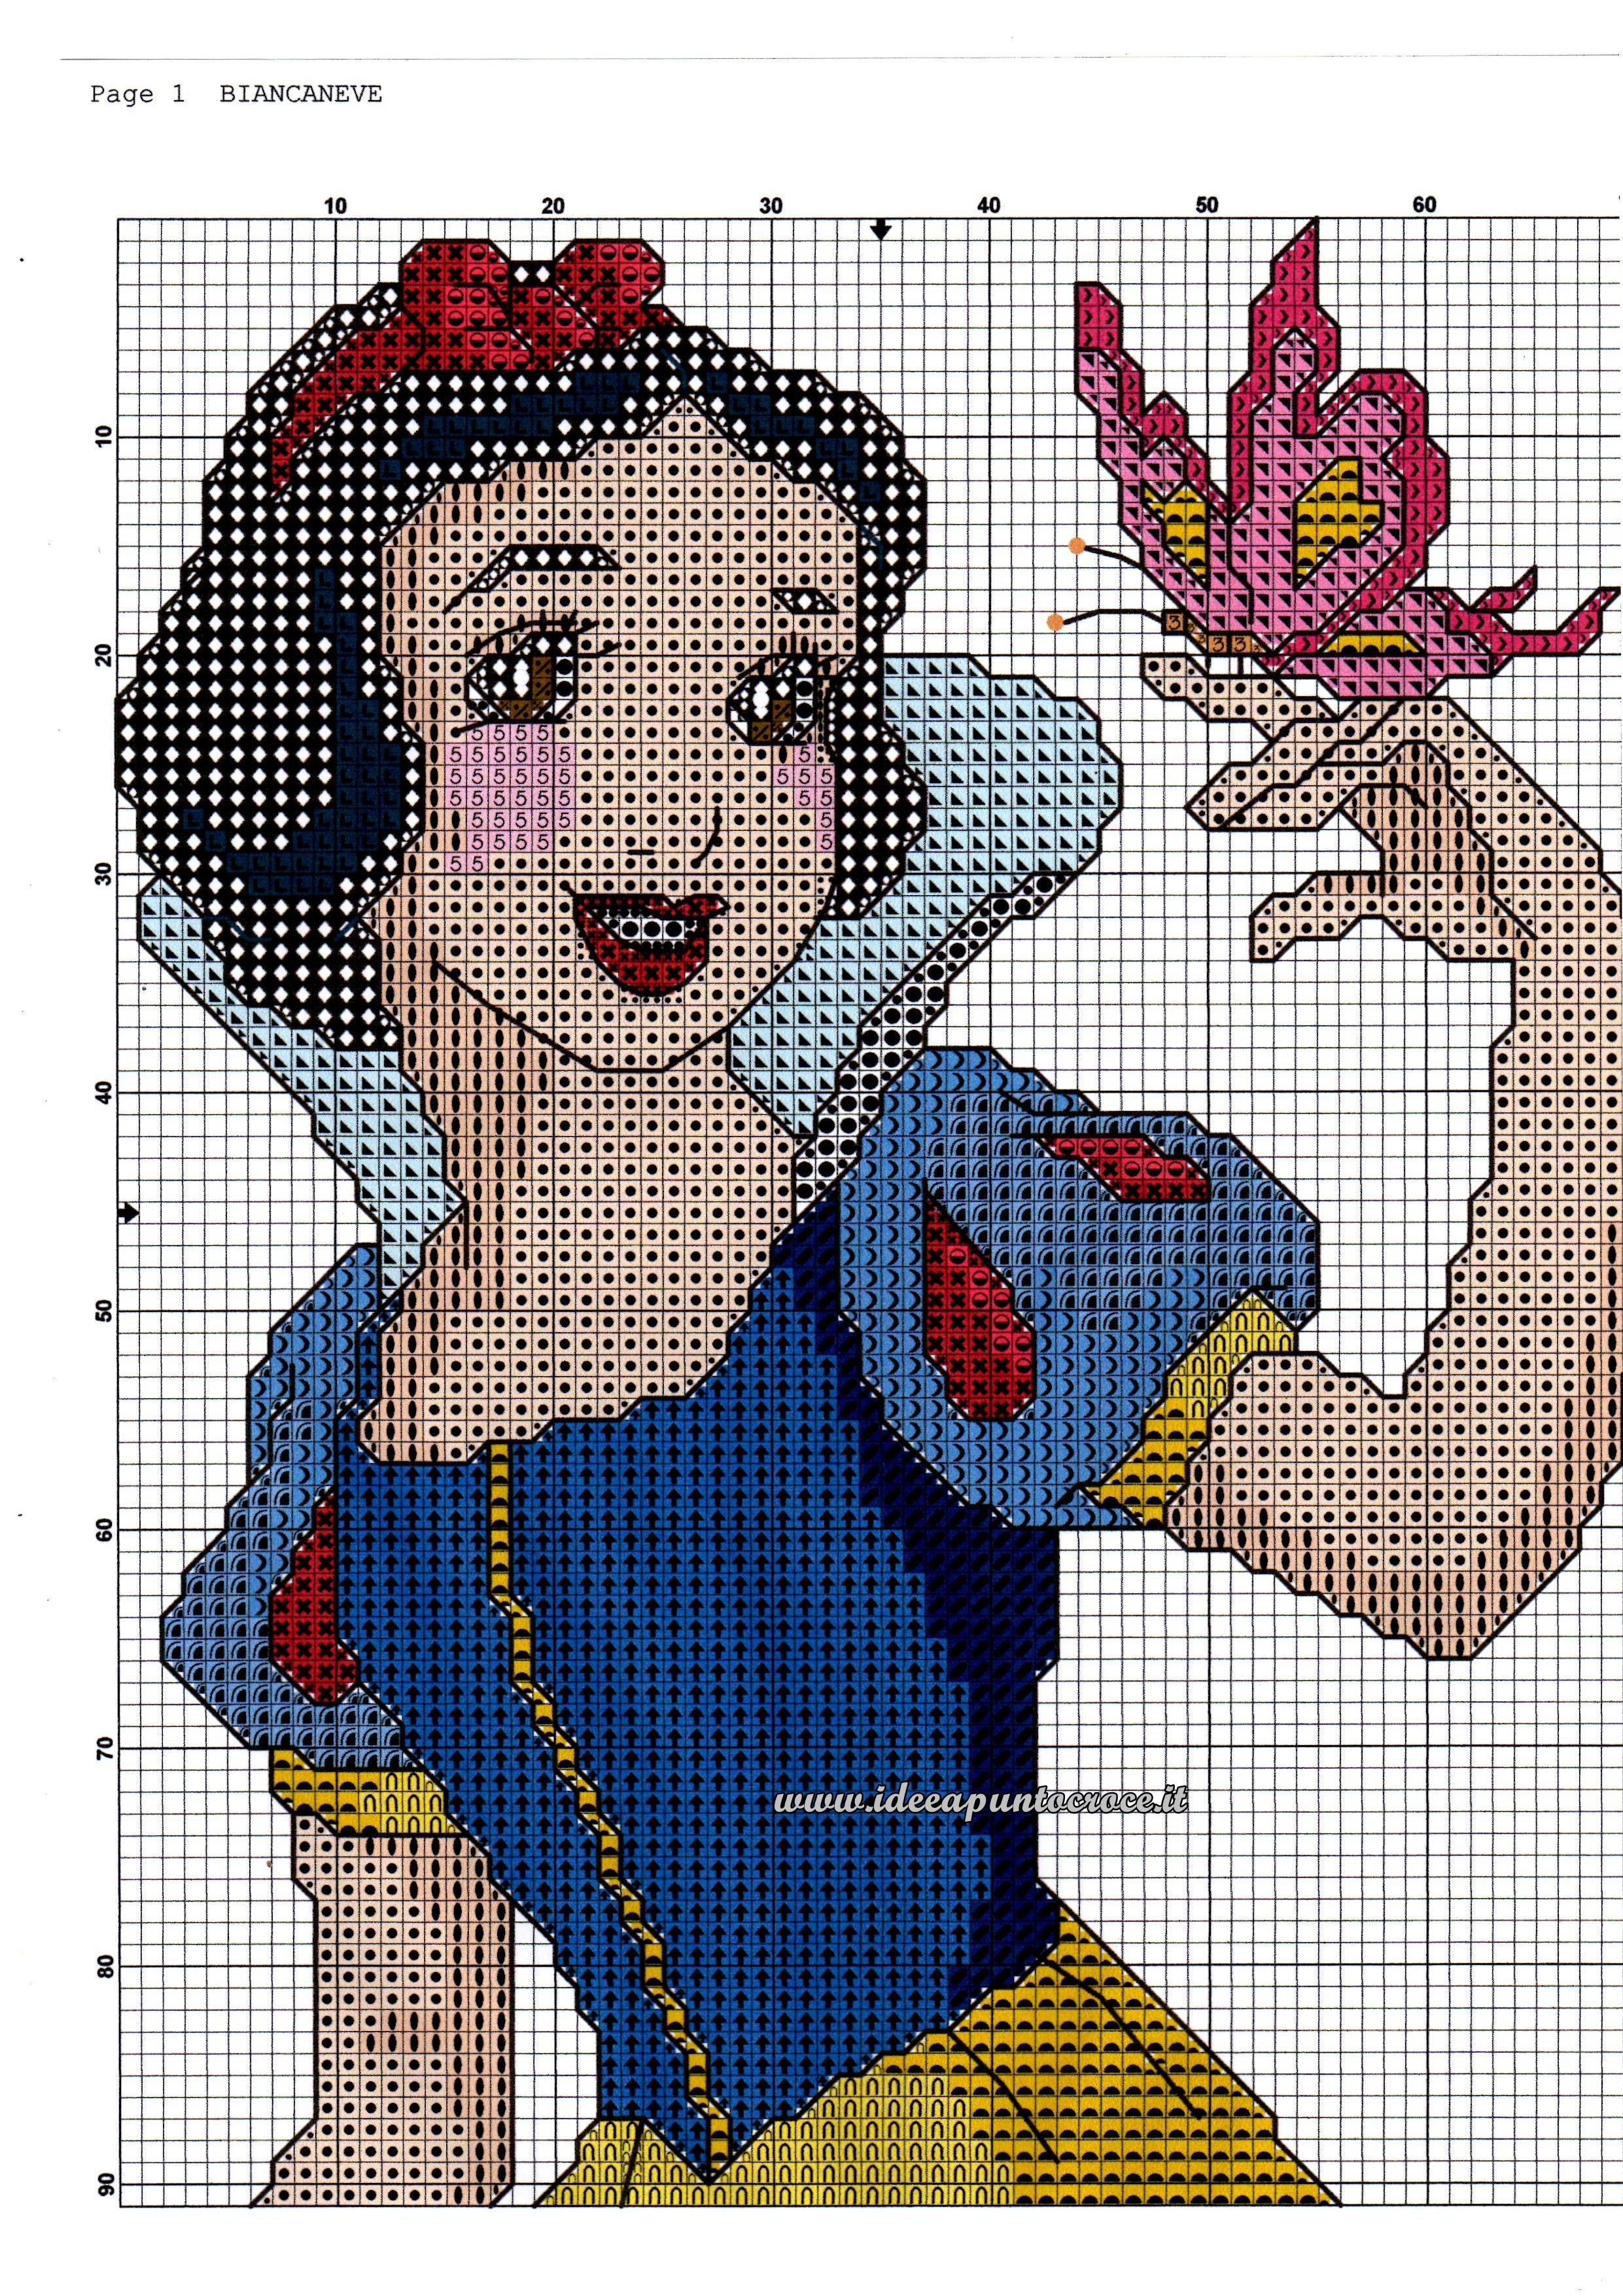 Snow White w/ butterfly 1 of 2